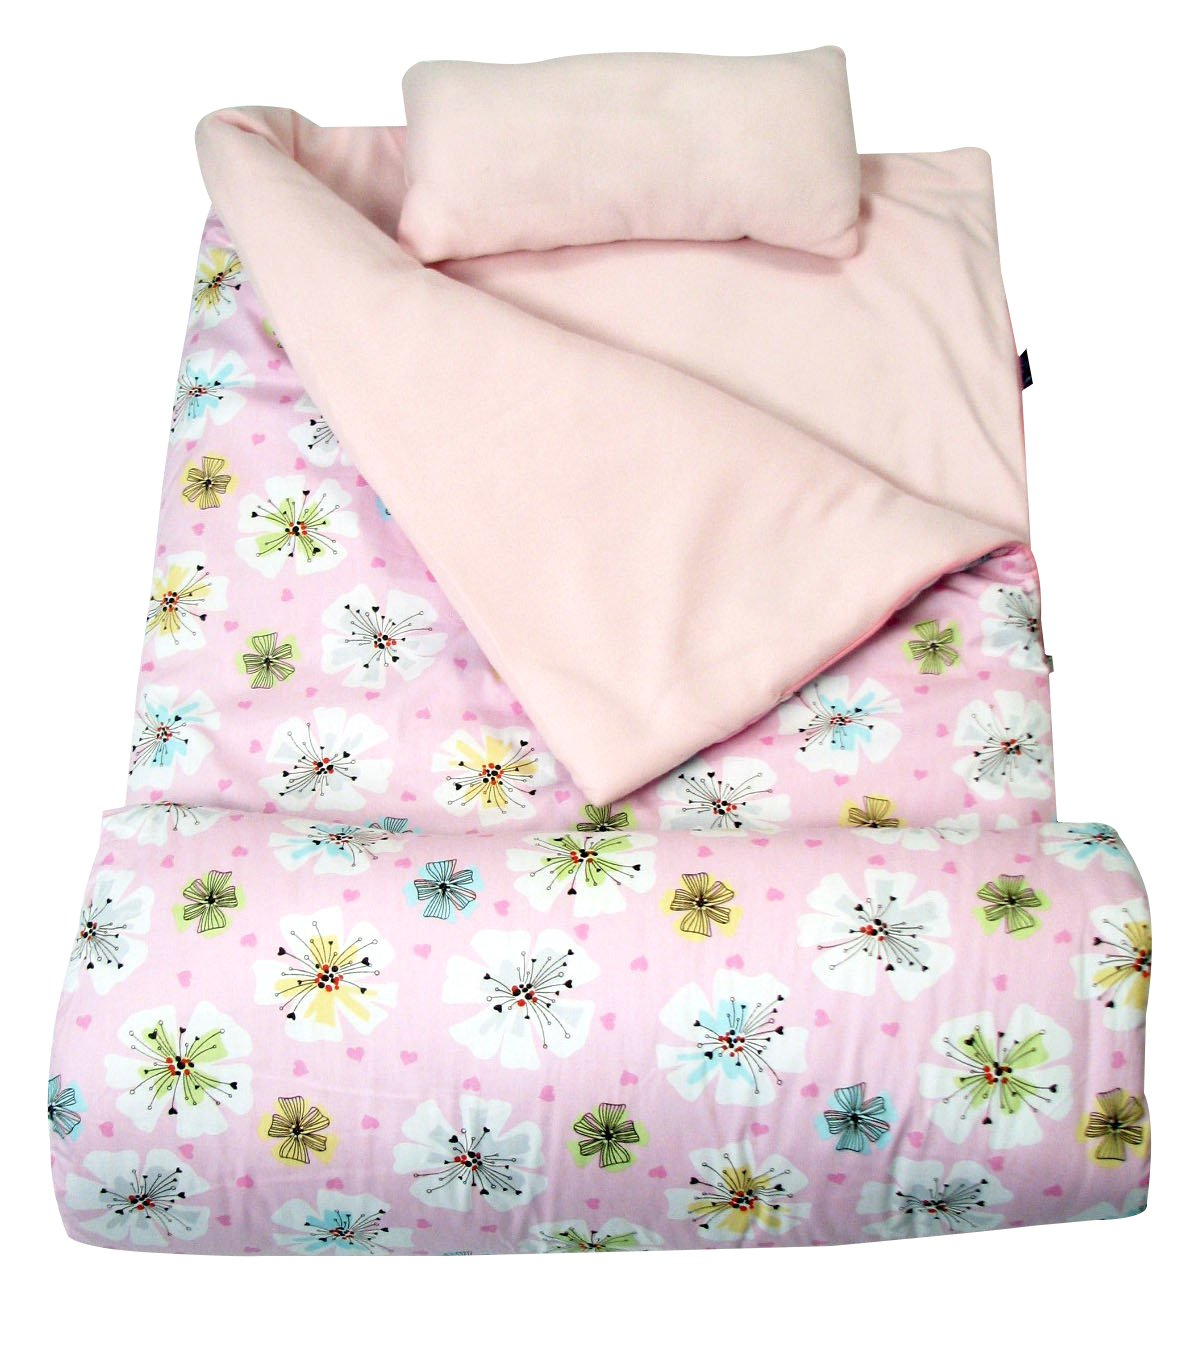 SoHo kids Hearts Flowers children sleeping slumber bag with pillow and carrying case lightweight foldable for sleep over